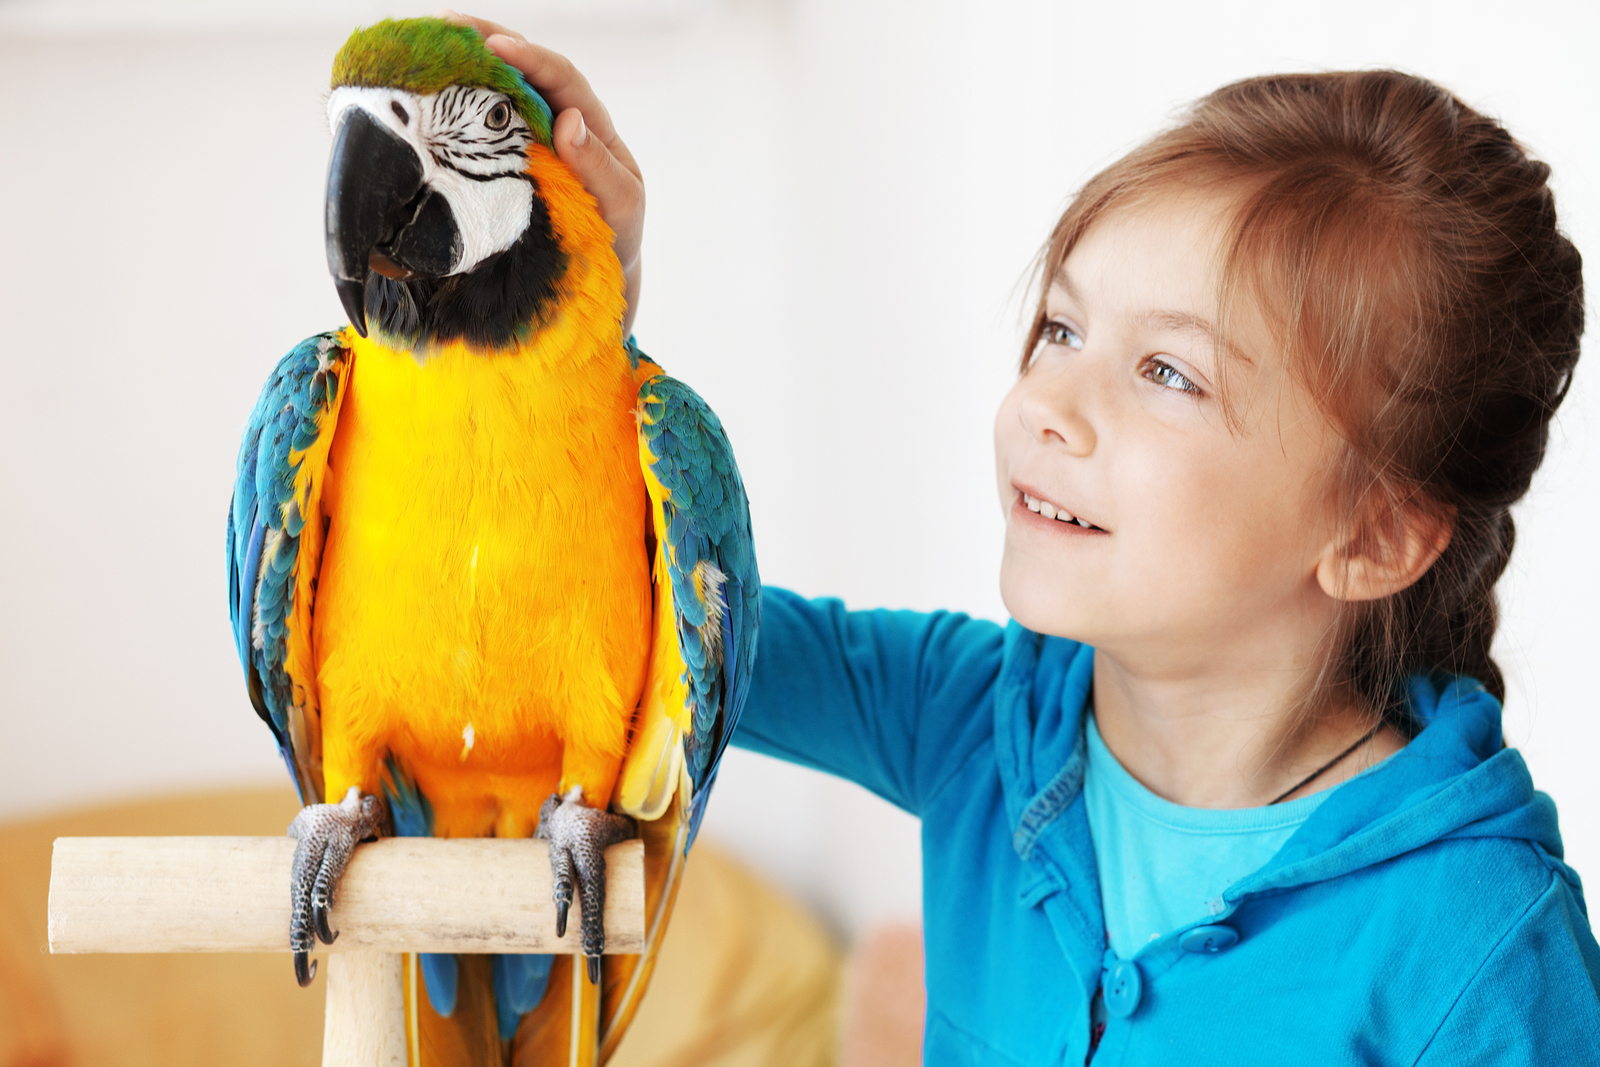 young girl next to her pet bird